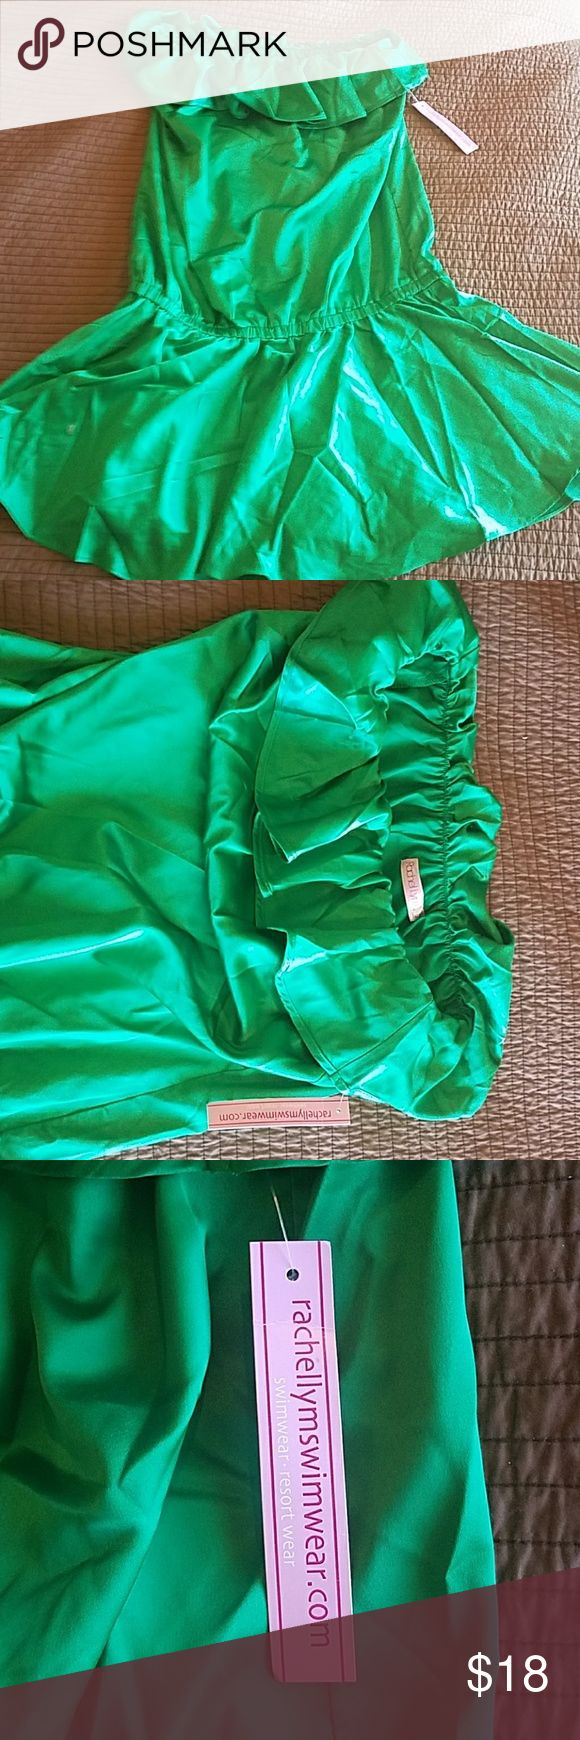 Rachel Lym Emerald swim cover up dress sz L NWT Swim cover up dress by Rachel Lym.  New with tags size large.  Emerald green color.  Photo in black is to show on body only.  New with tags.  Smoke free and pet free home. rachel lym Swim Coverups